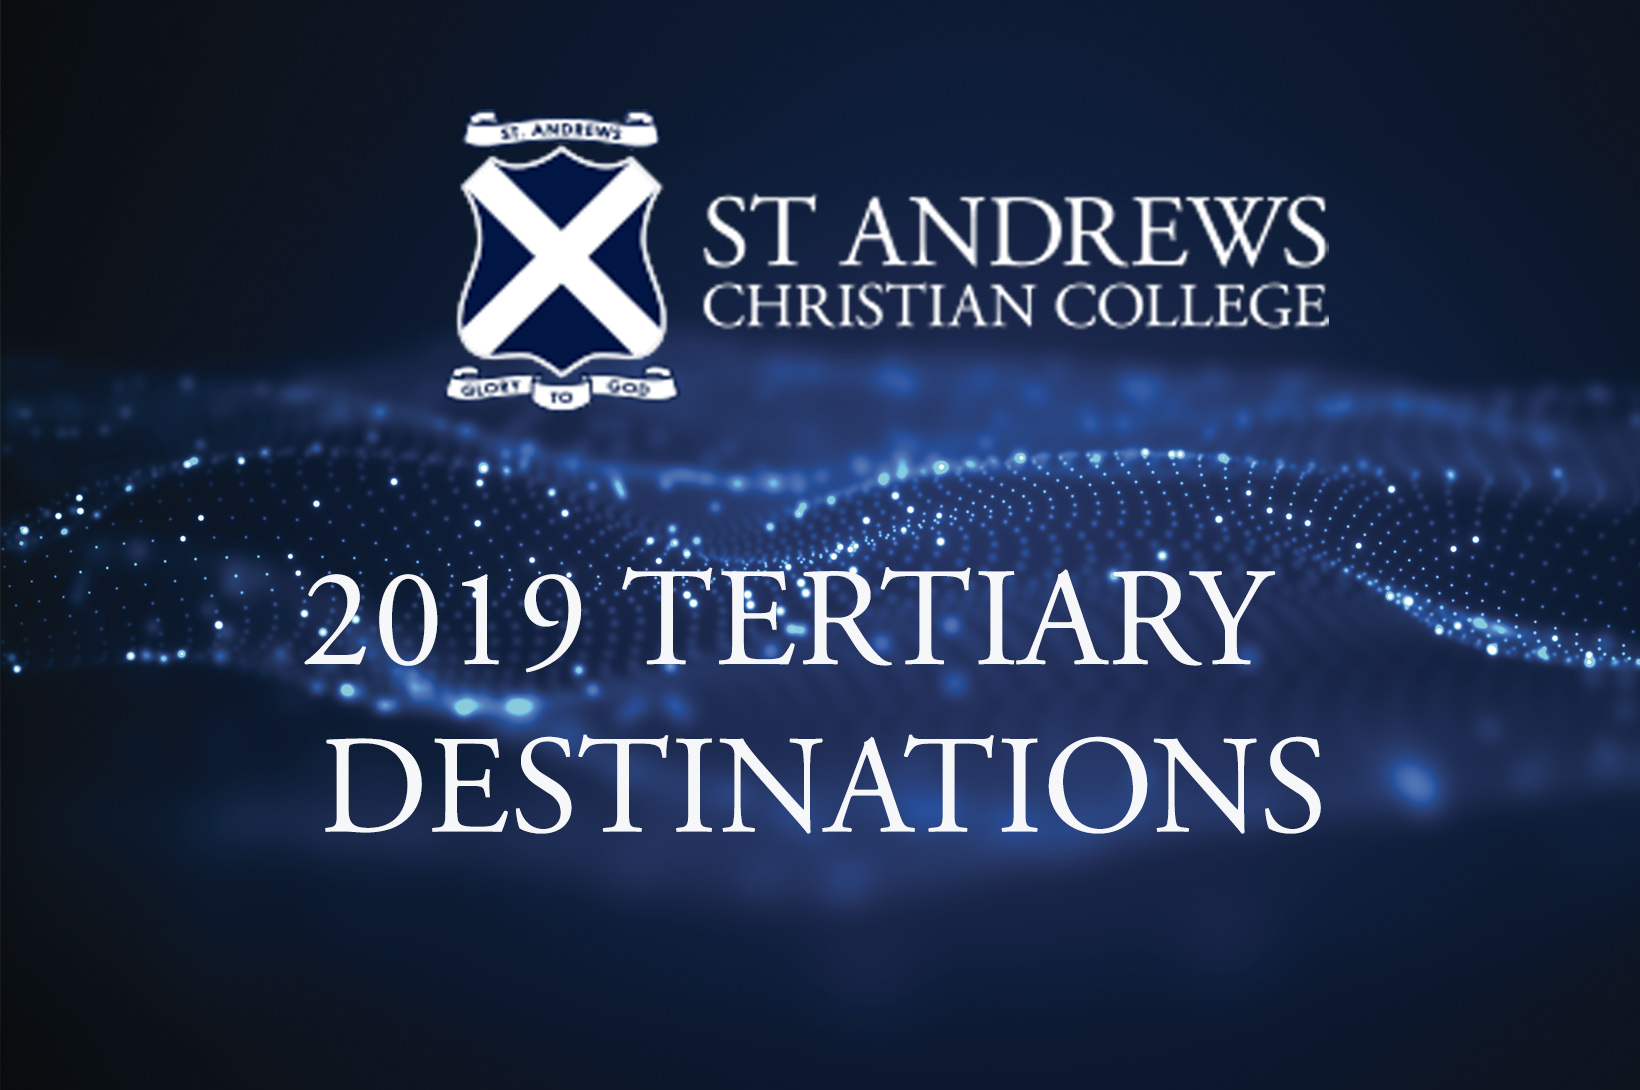 2019 Tertiary Destinations